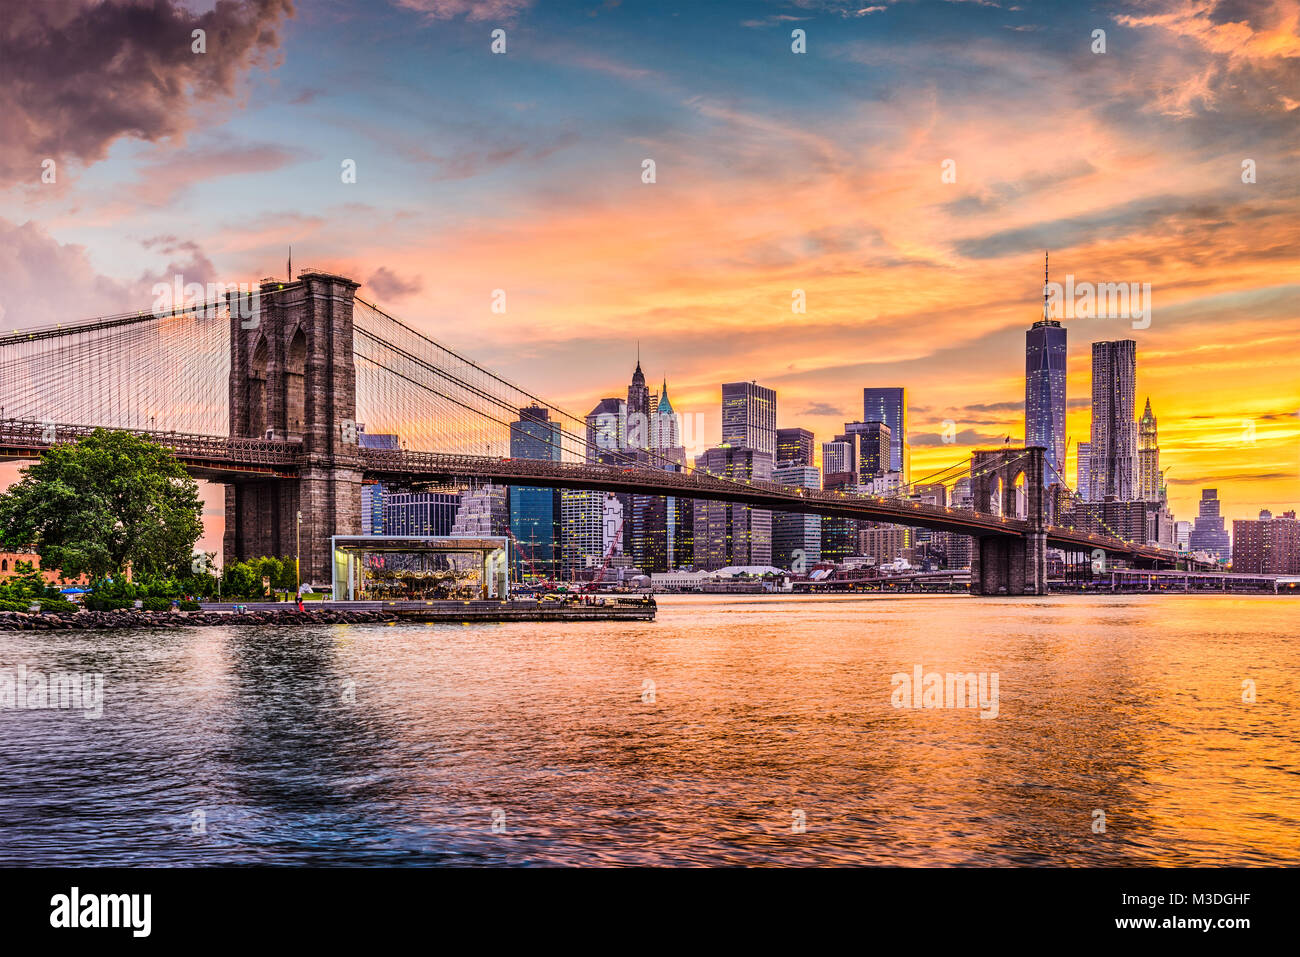 New York City Skyline on the East River with Brooklyn Bridge at sunset. - Stock Image